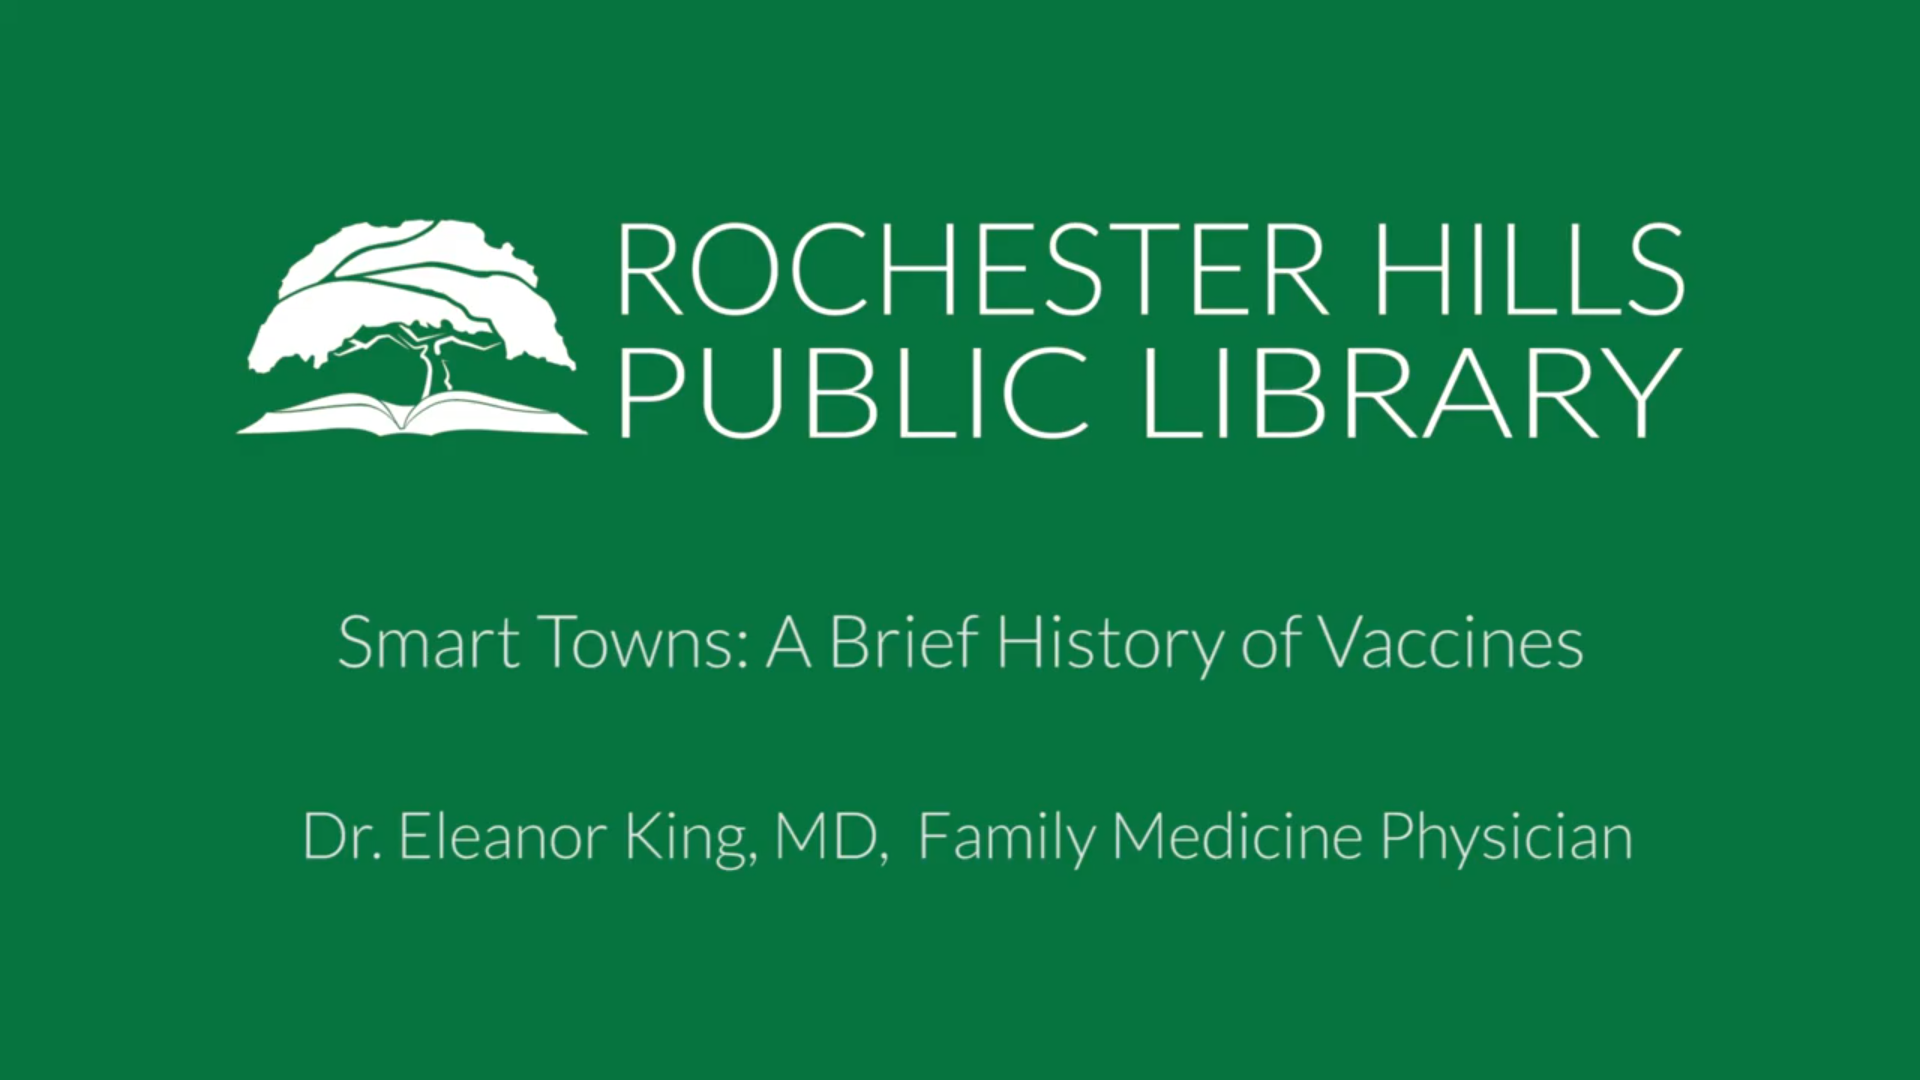 Smart Towns: A Brief History of Vaccines